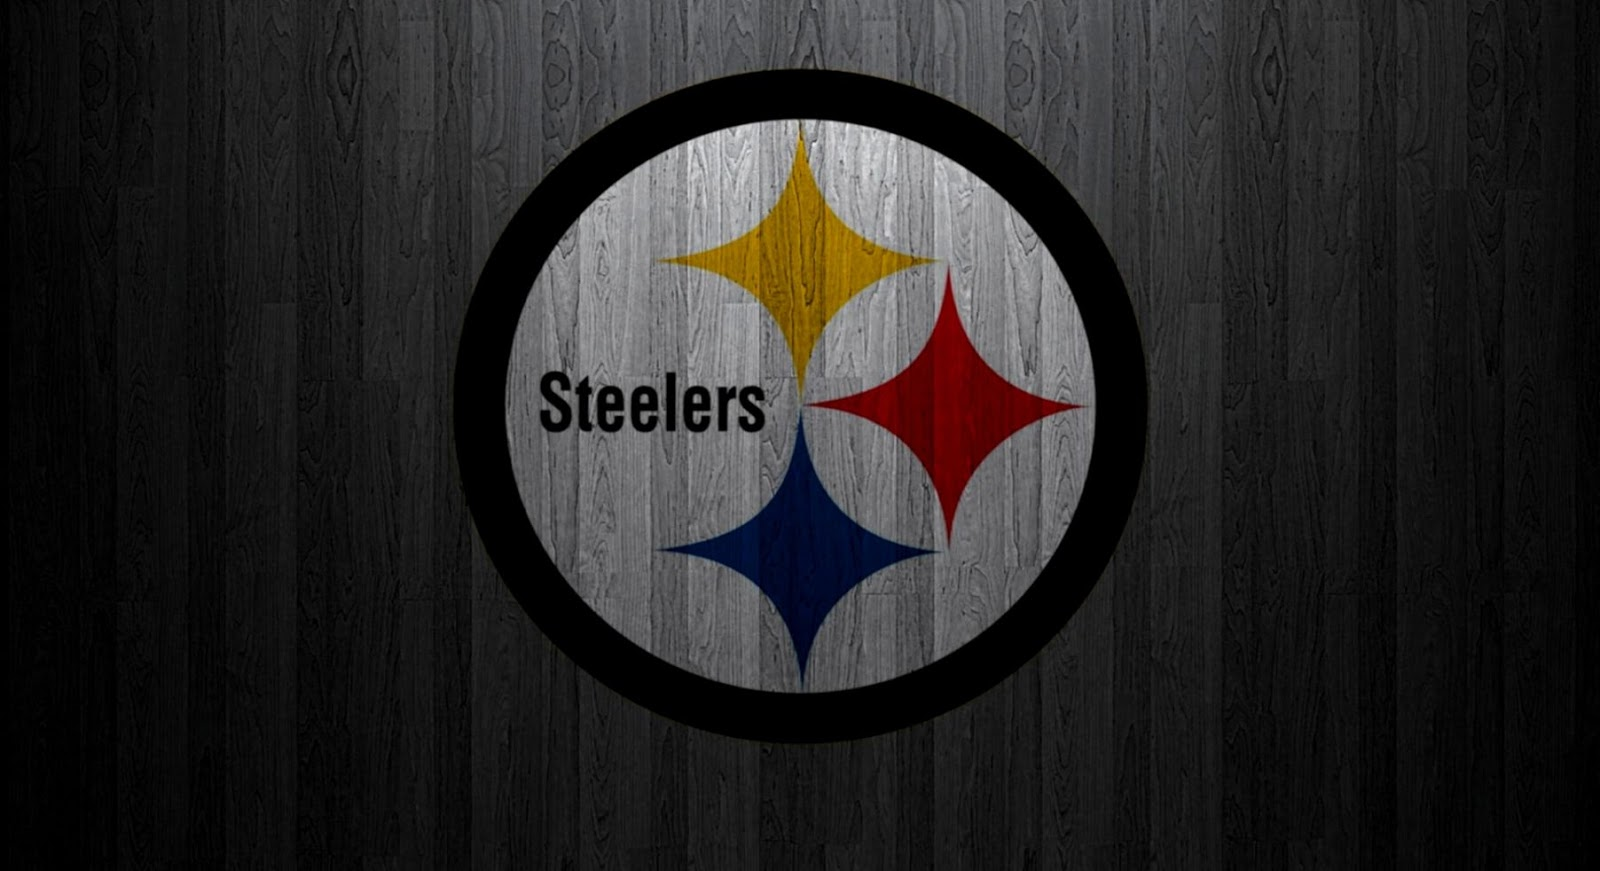 1600x871 - Steelers Desktop 9